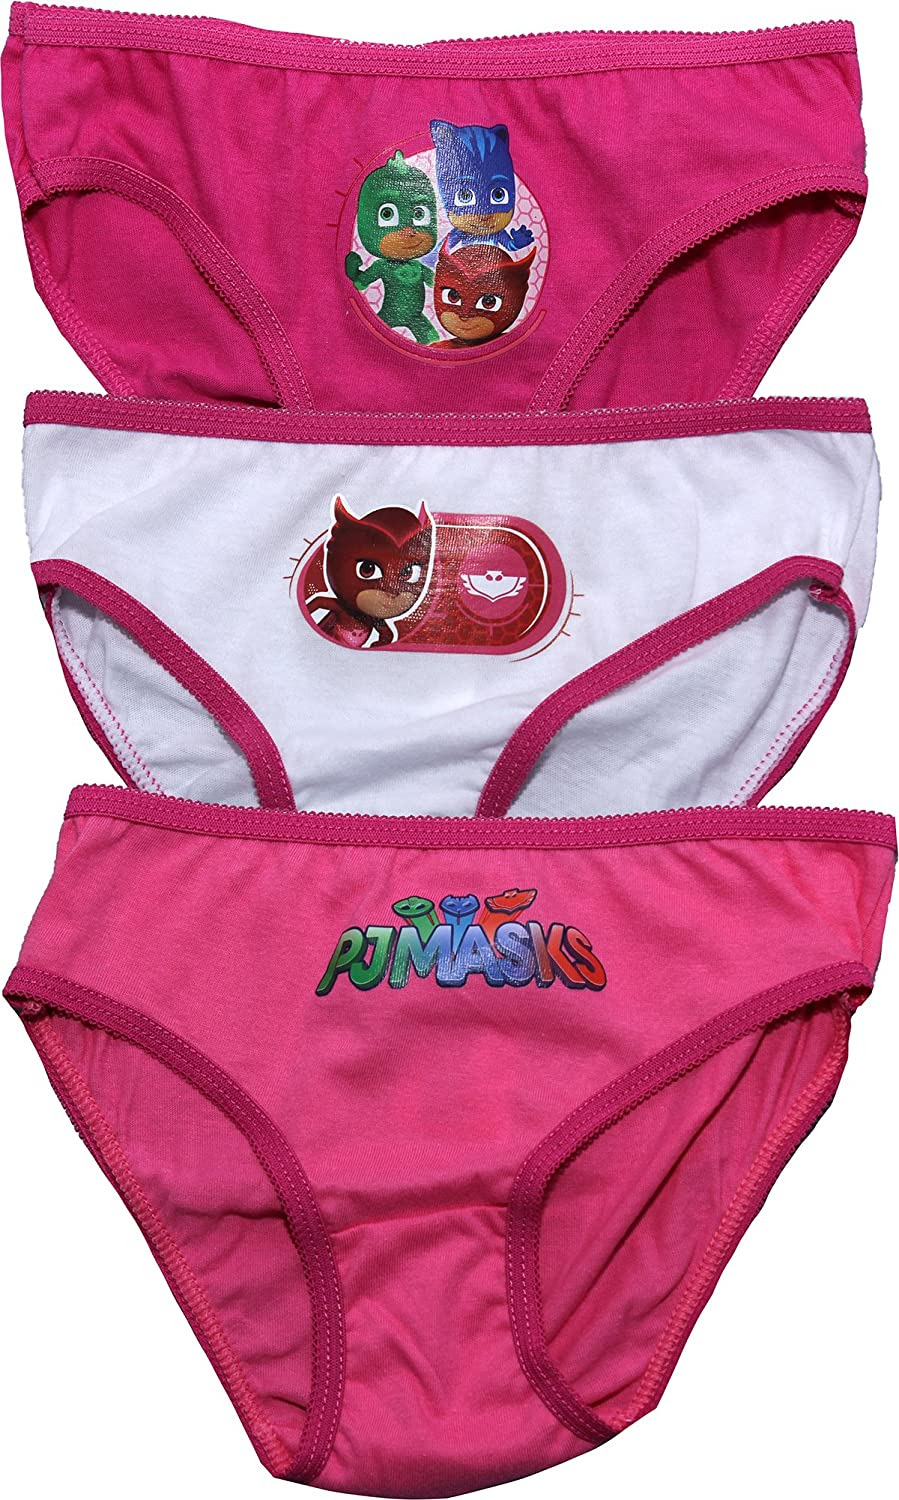 PJ MASKS Children's Girls Owelette Three Pack Underwear Briefs Set New 2017-2018